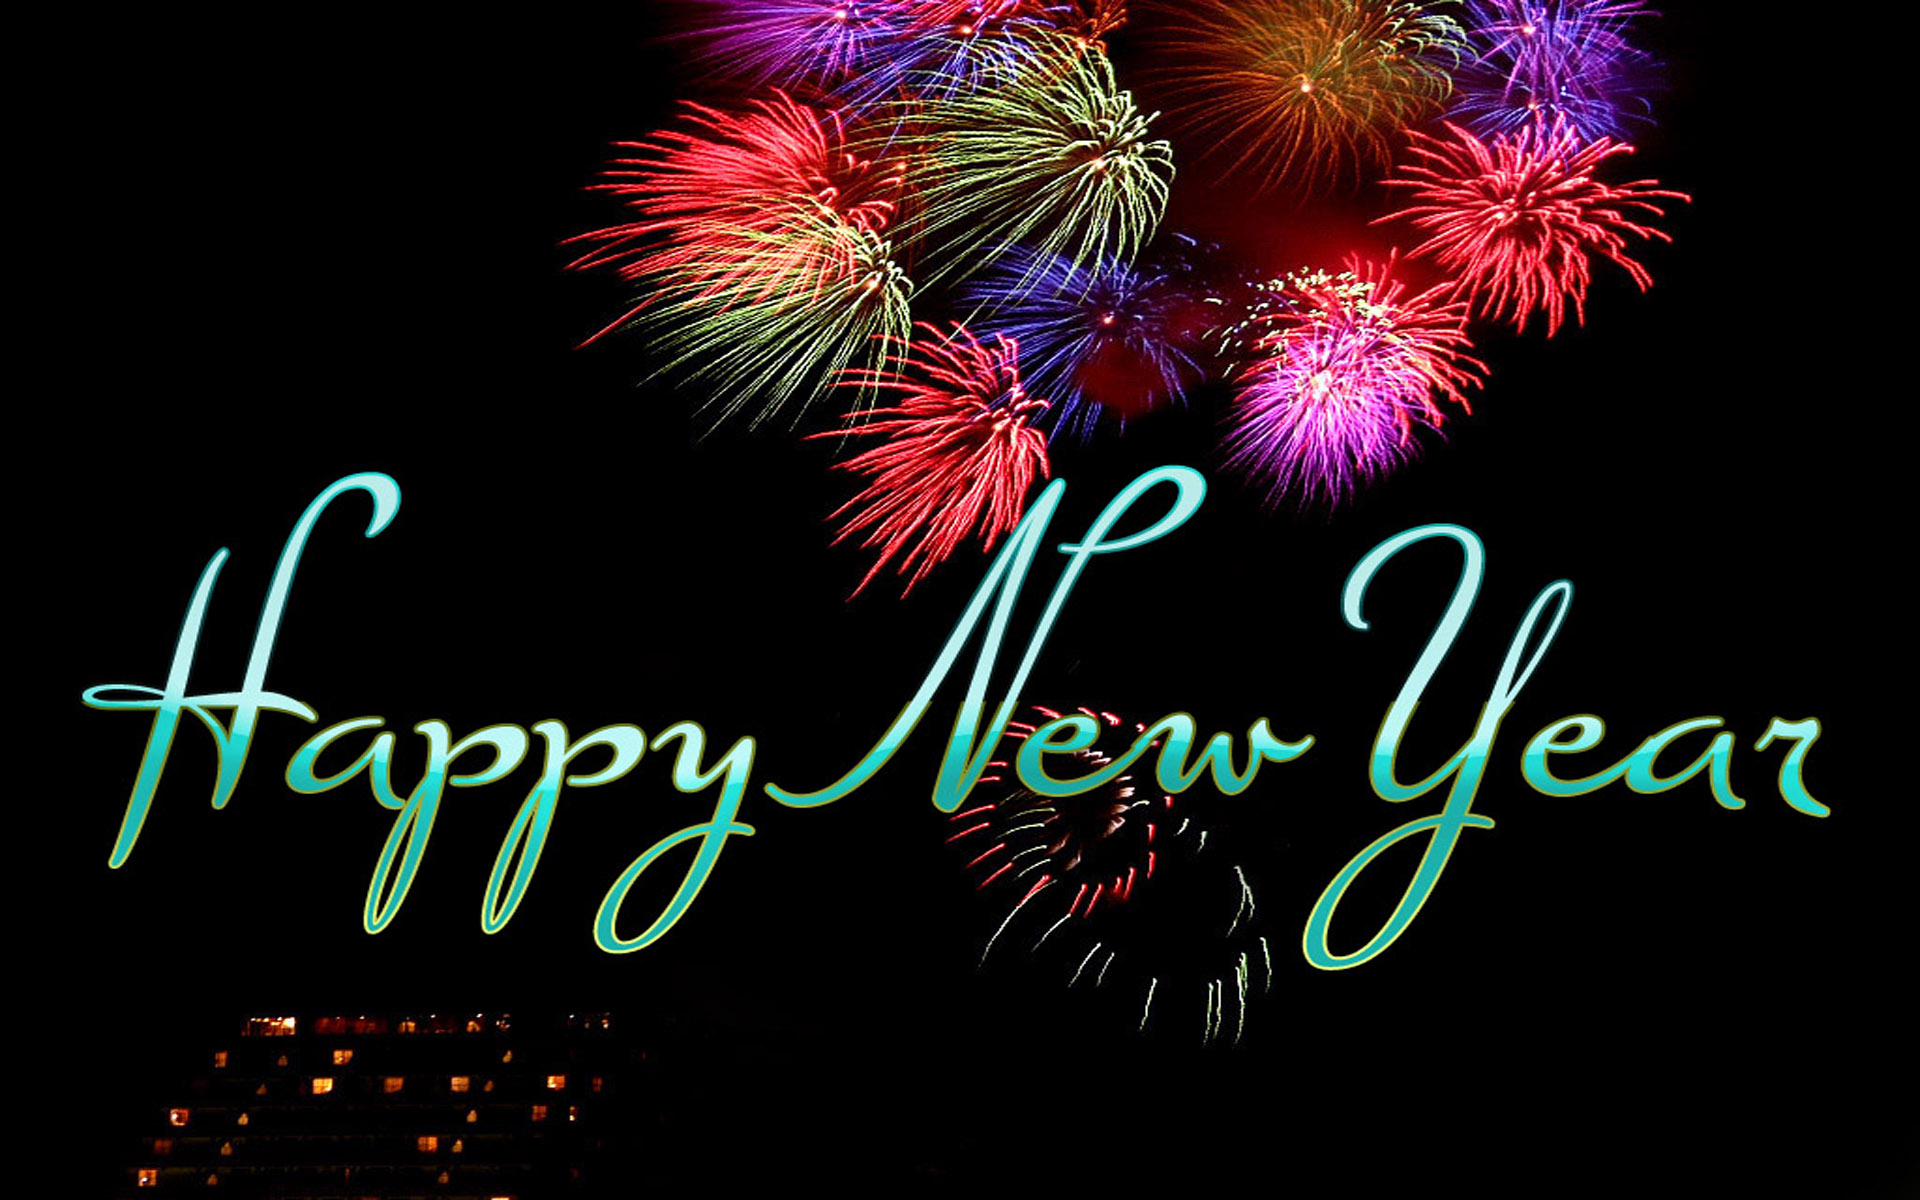 download happy new year hd wallpaper for free